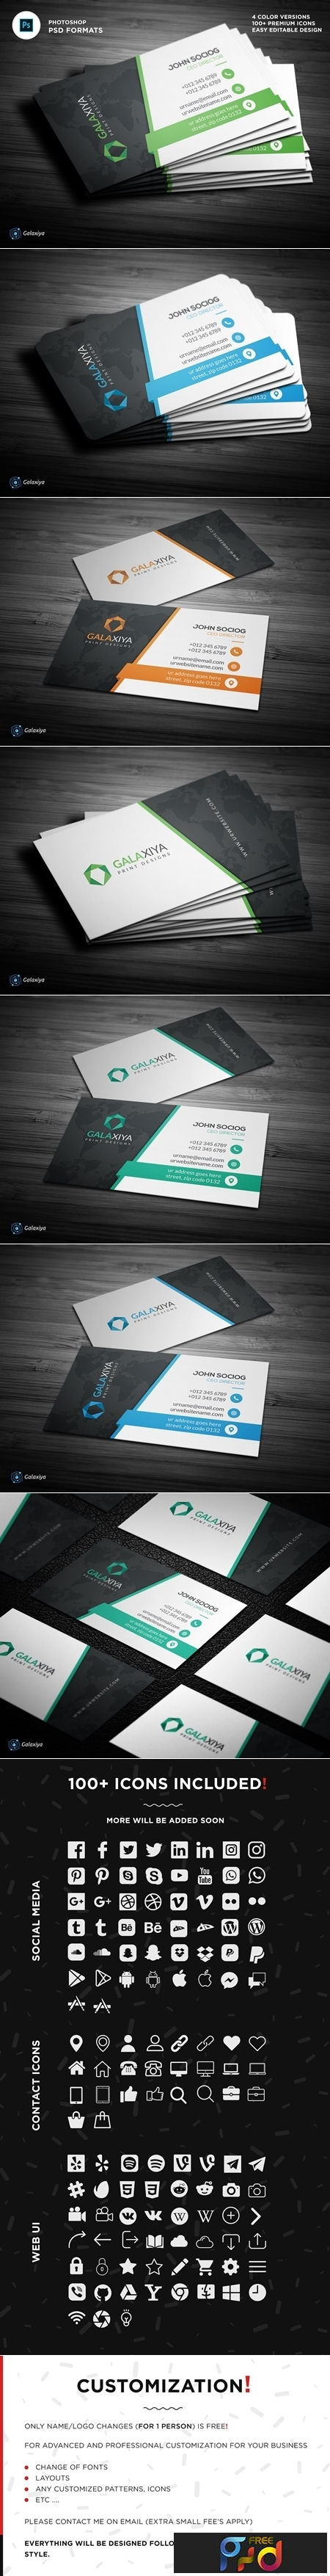 Modern Creative Business Cards 3038576 1